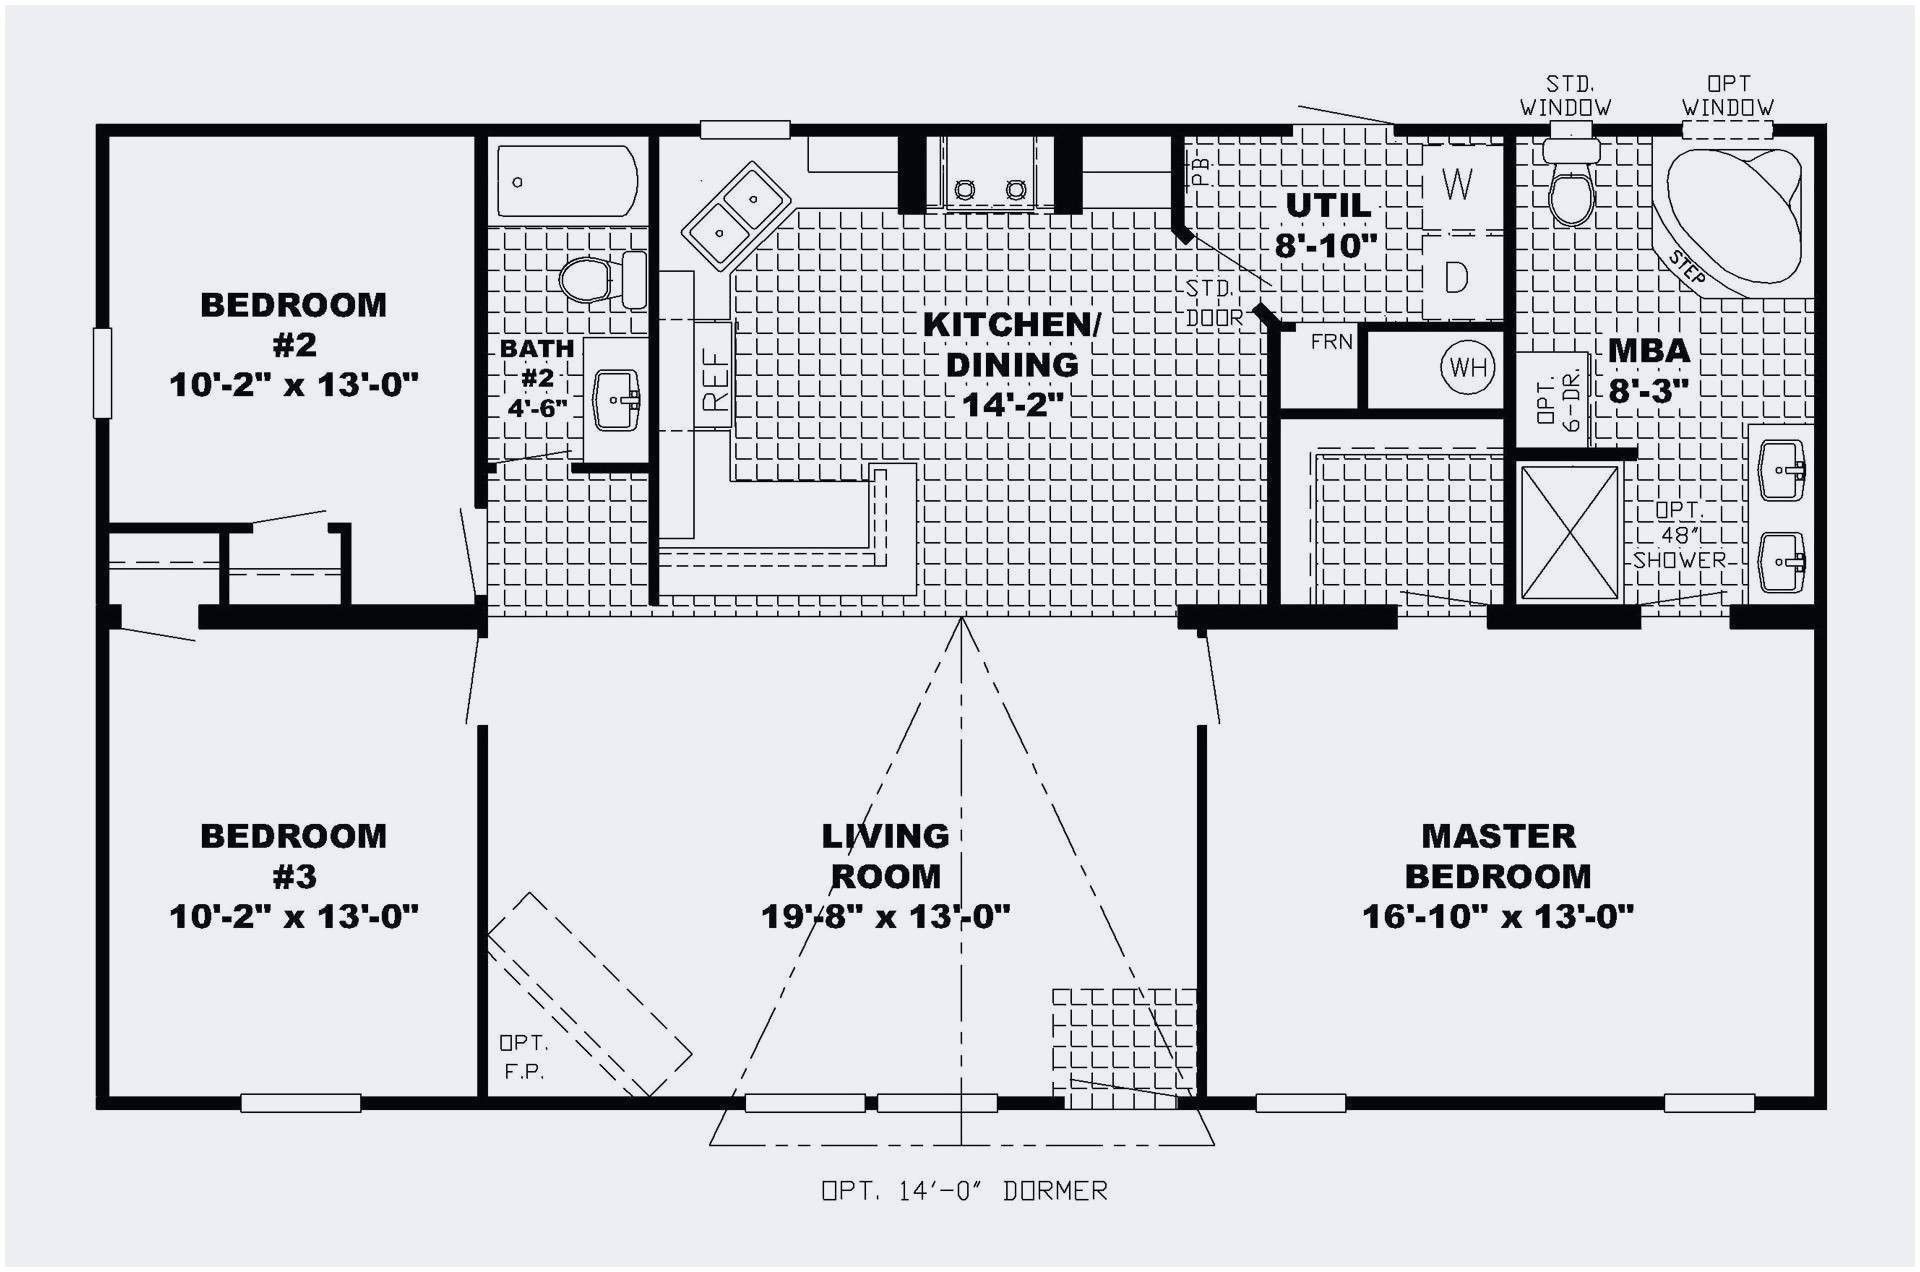 23 Best Of Small 3 Bedroom House Floor Plans Collection Basement House Plans Floor Plans Ranch Open Floor House Plans